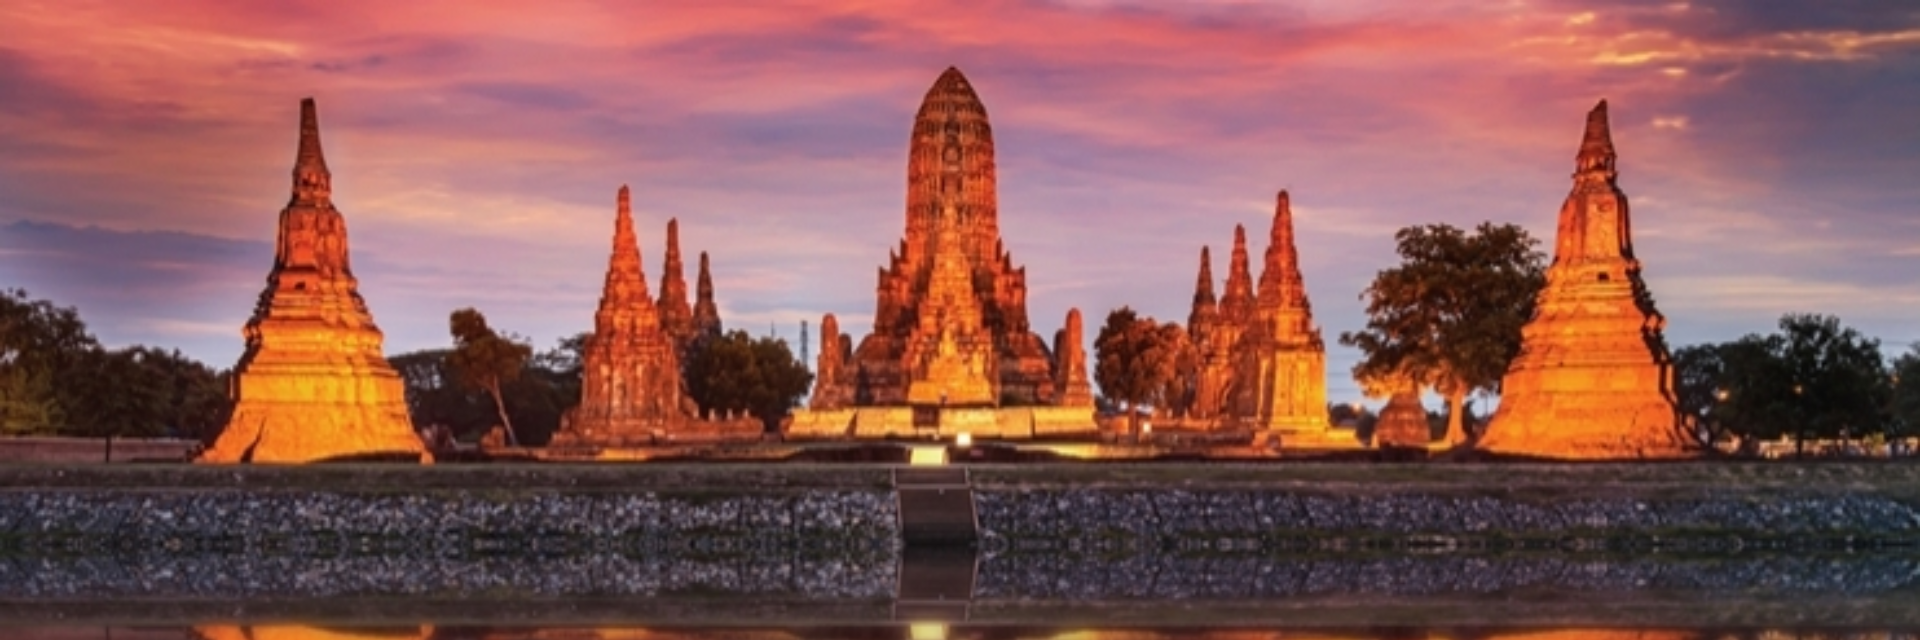 NINE TEMPLES IN AYUTTHAYA : EXOTIC PILGRIMAGE IN THE HISTORICAL CITY